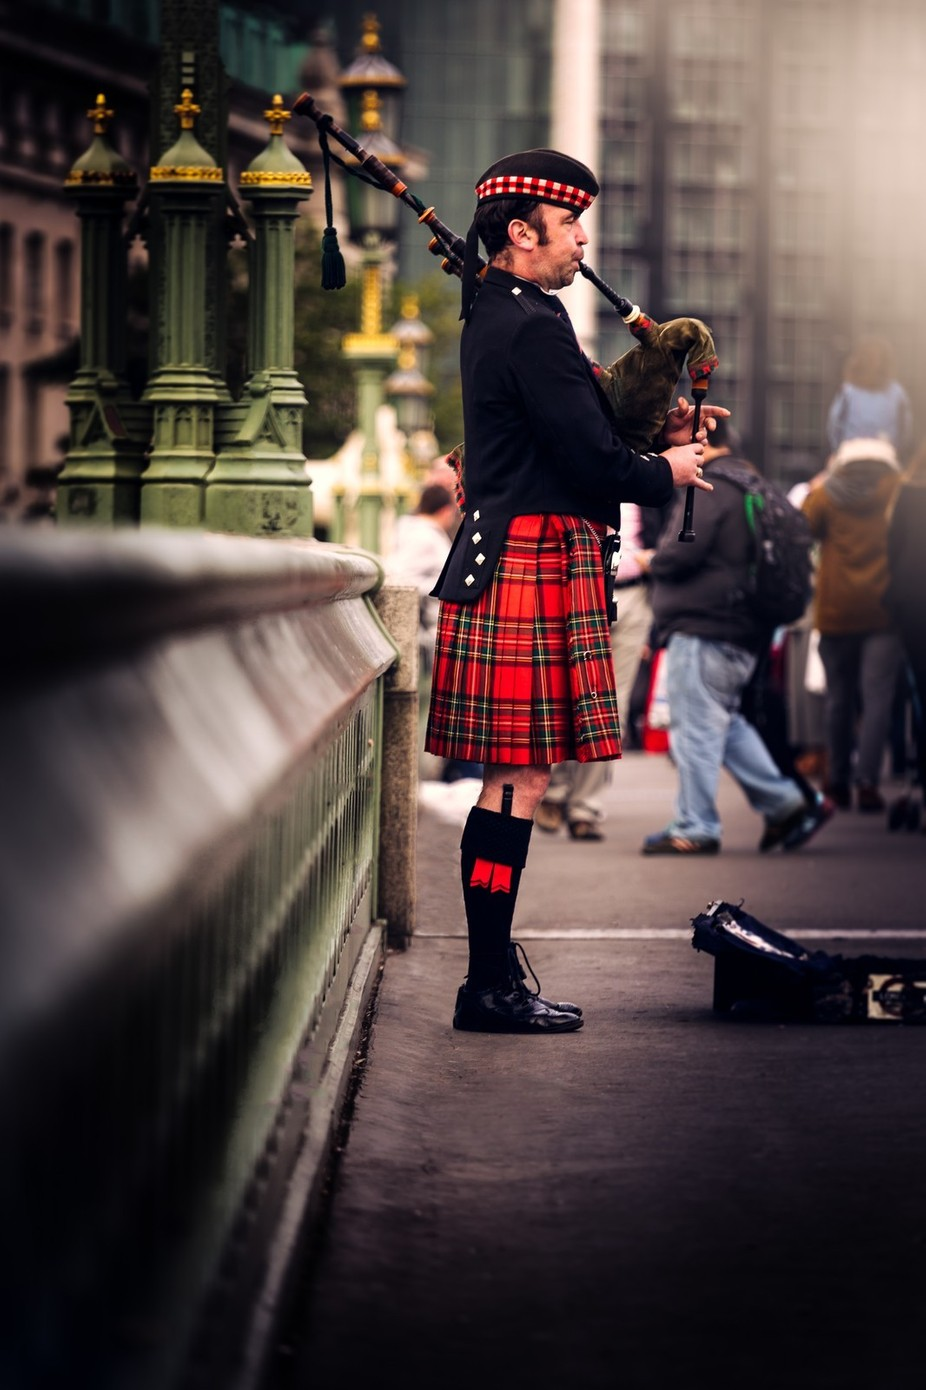 Piper in London by rbhalla - Discover Europe Photo Contest